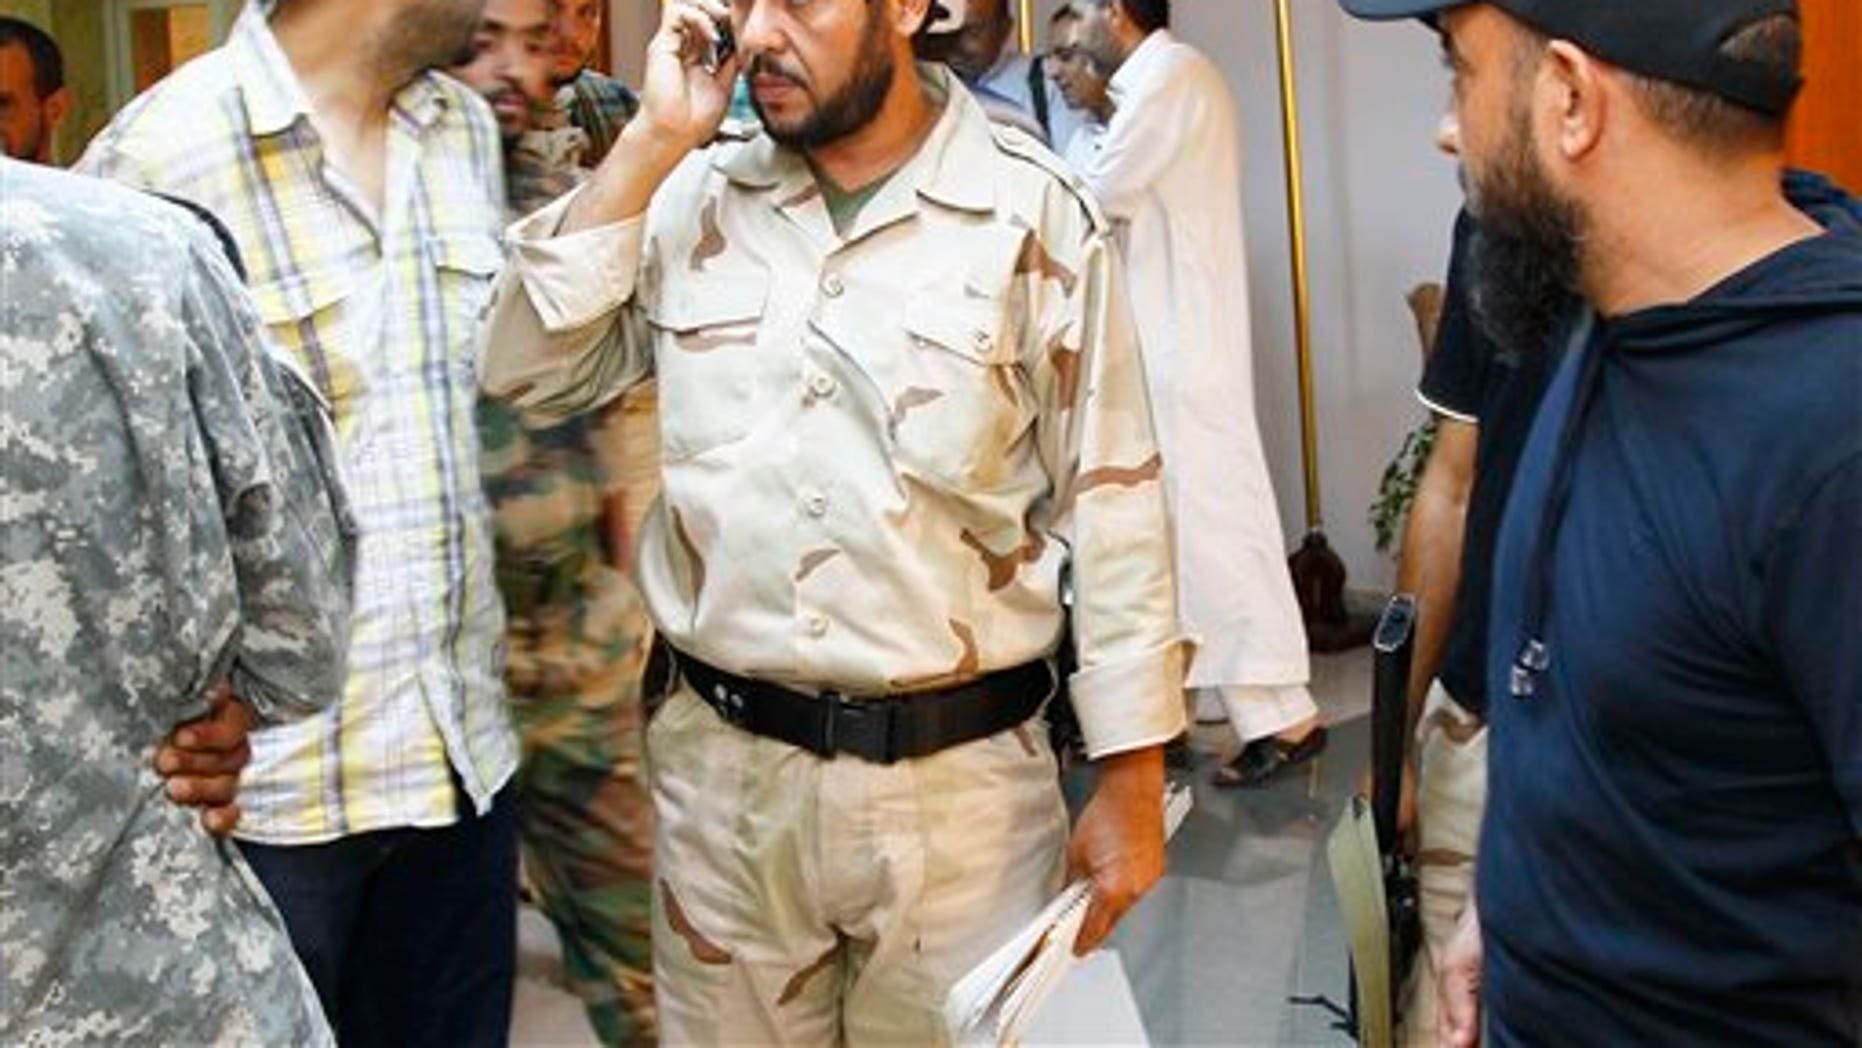 August 31: Libyan rebels' Tripoli military commander Abdel Hakim Belhaj, center, after an interview with the Associated Press in Tripoli, Libya.